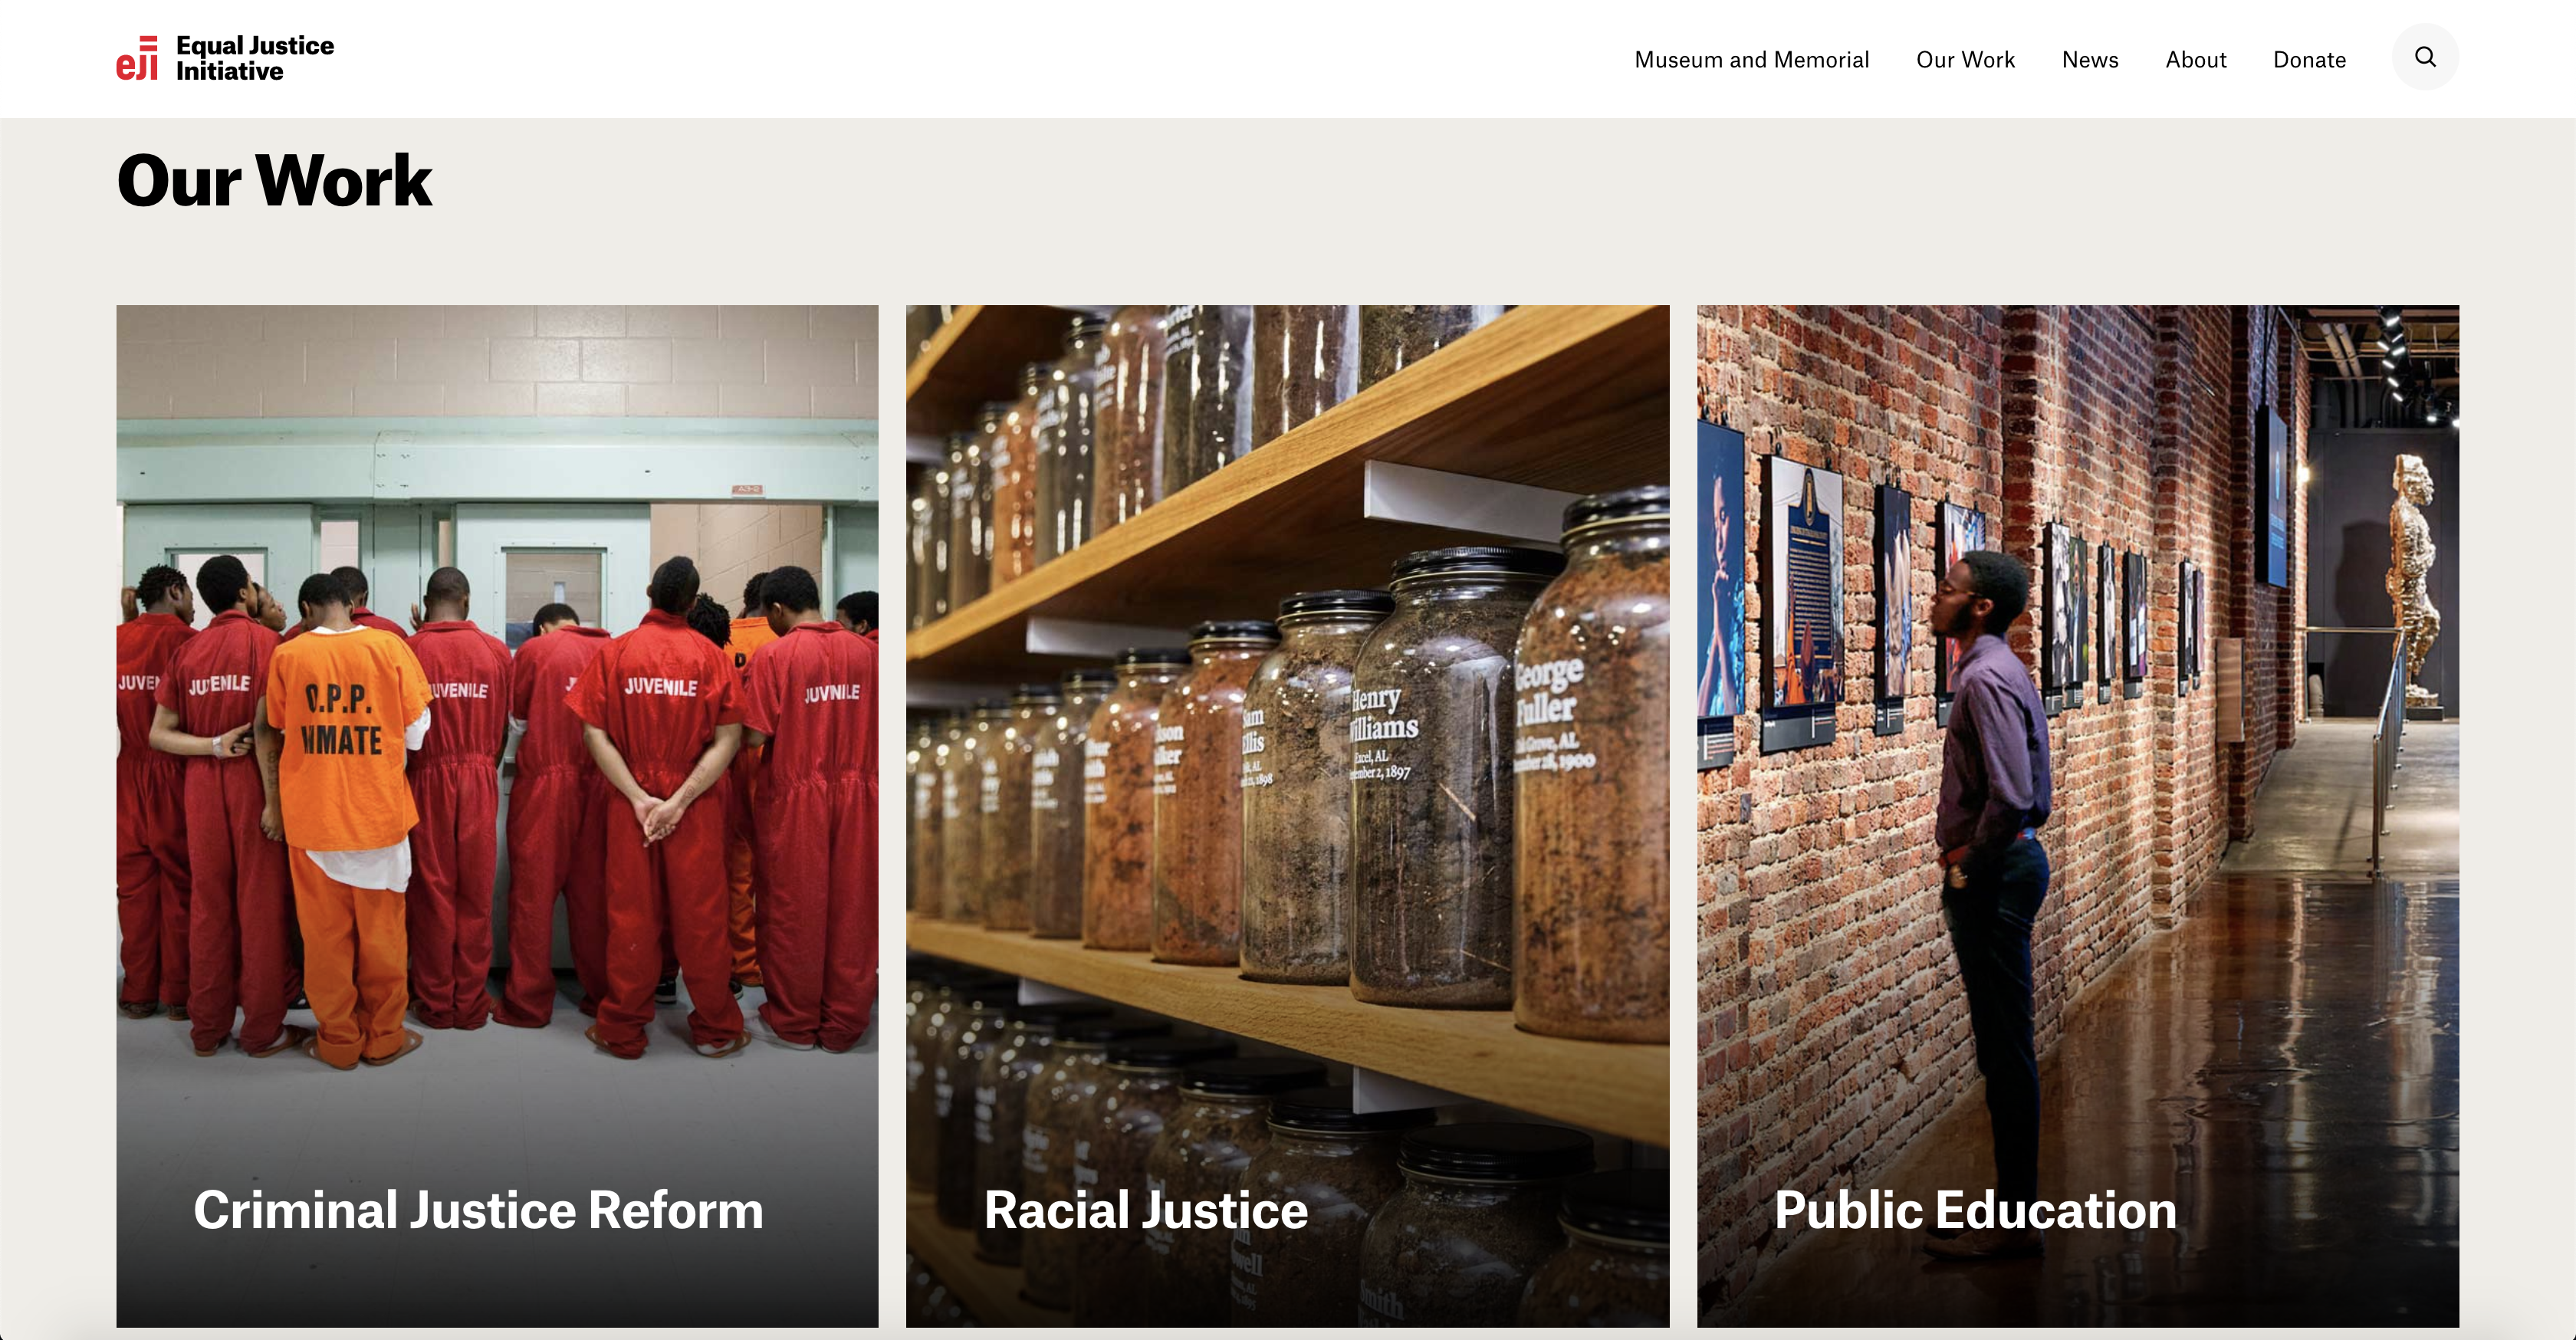 The visualization and messaging around the organization's core programs on the homepage are subtle and minimalist